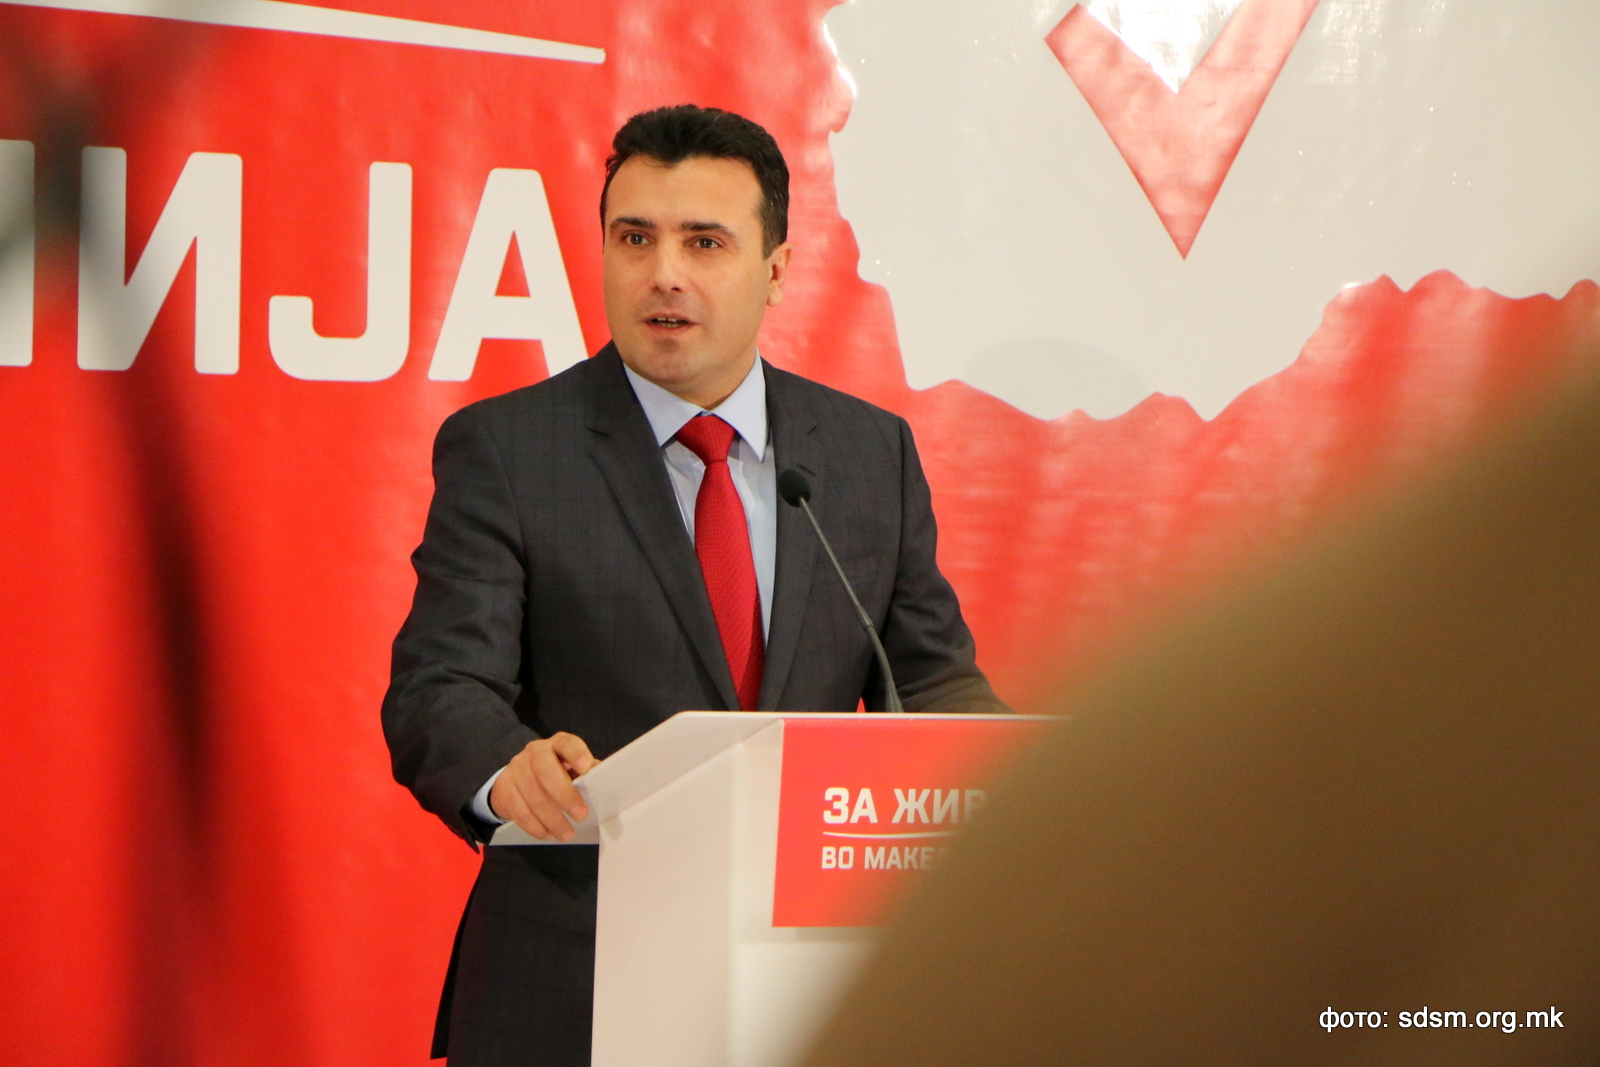 SDSM leader accuses Macedonia's president of carrying out 'coup'